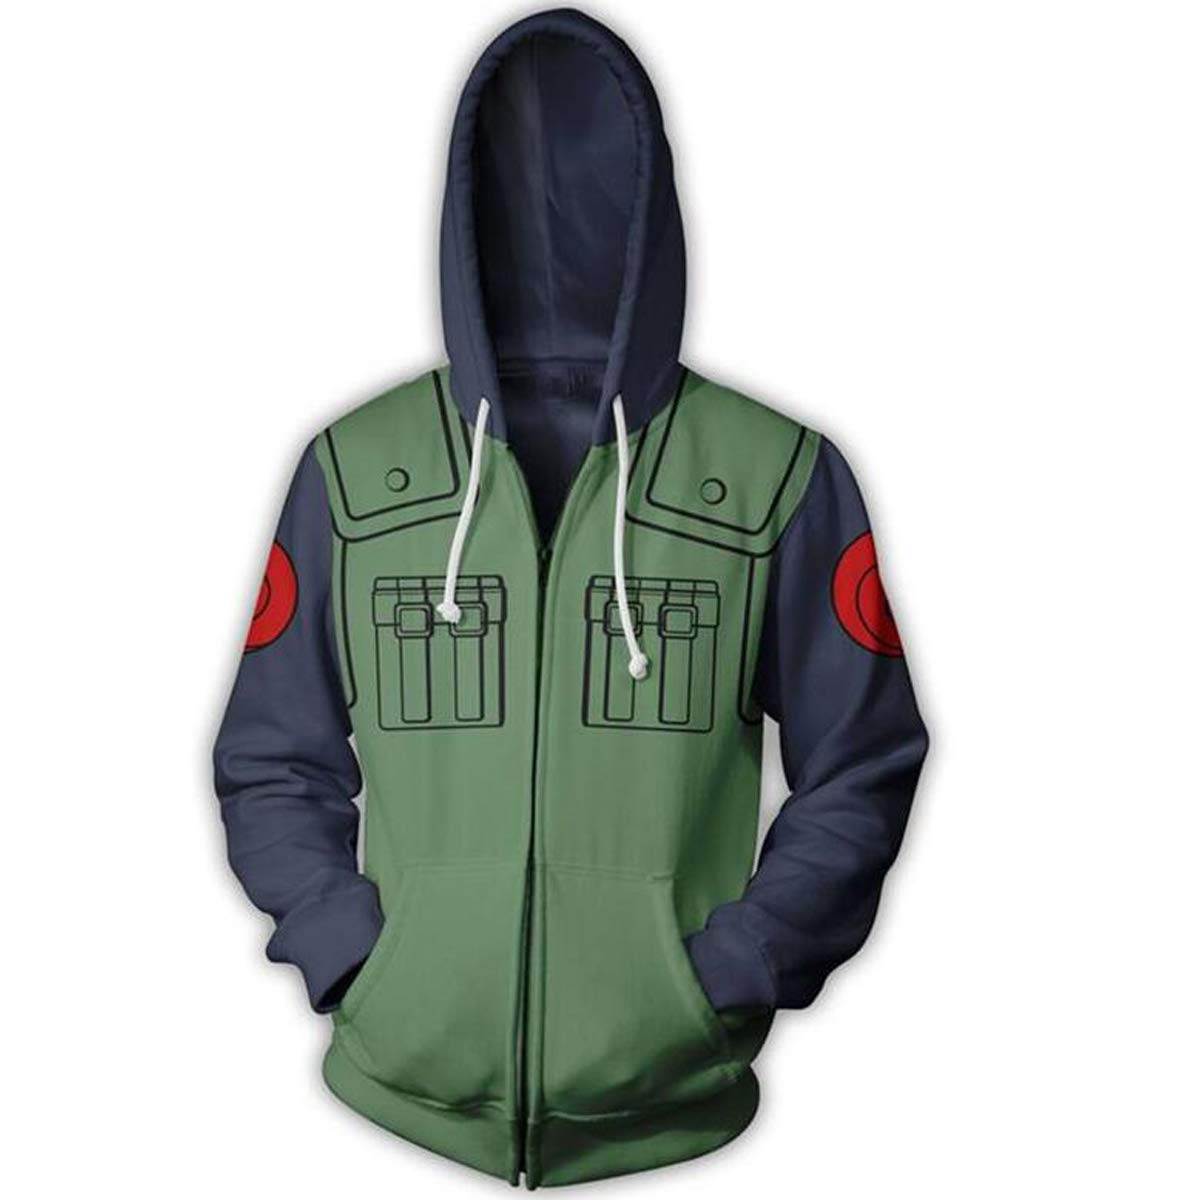 NSOKing Hot Anime 3D Hatake Kakashi Cosplay Costume Jacket Coat Hoodie (Large, Green) by NSOKing